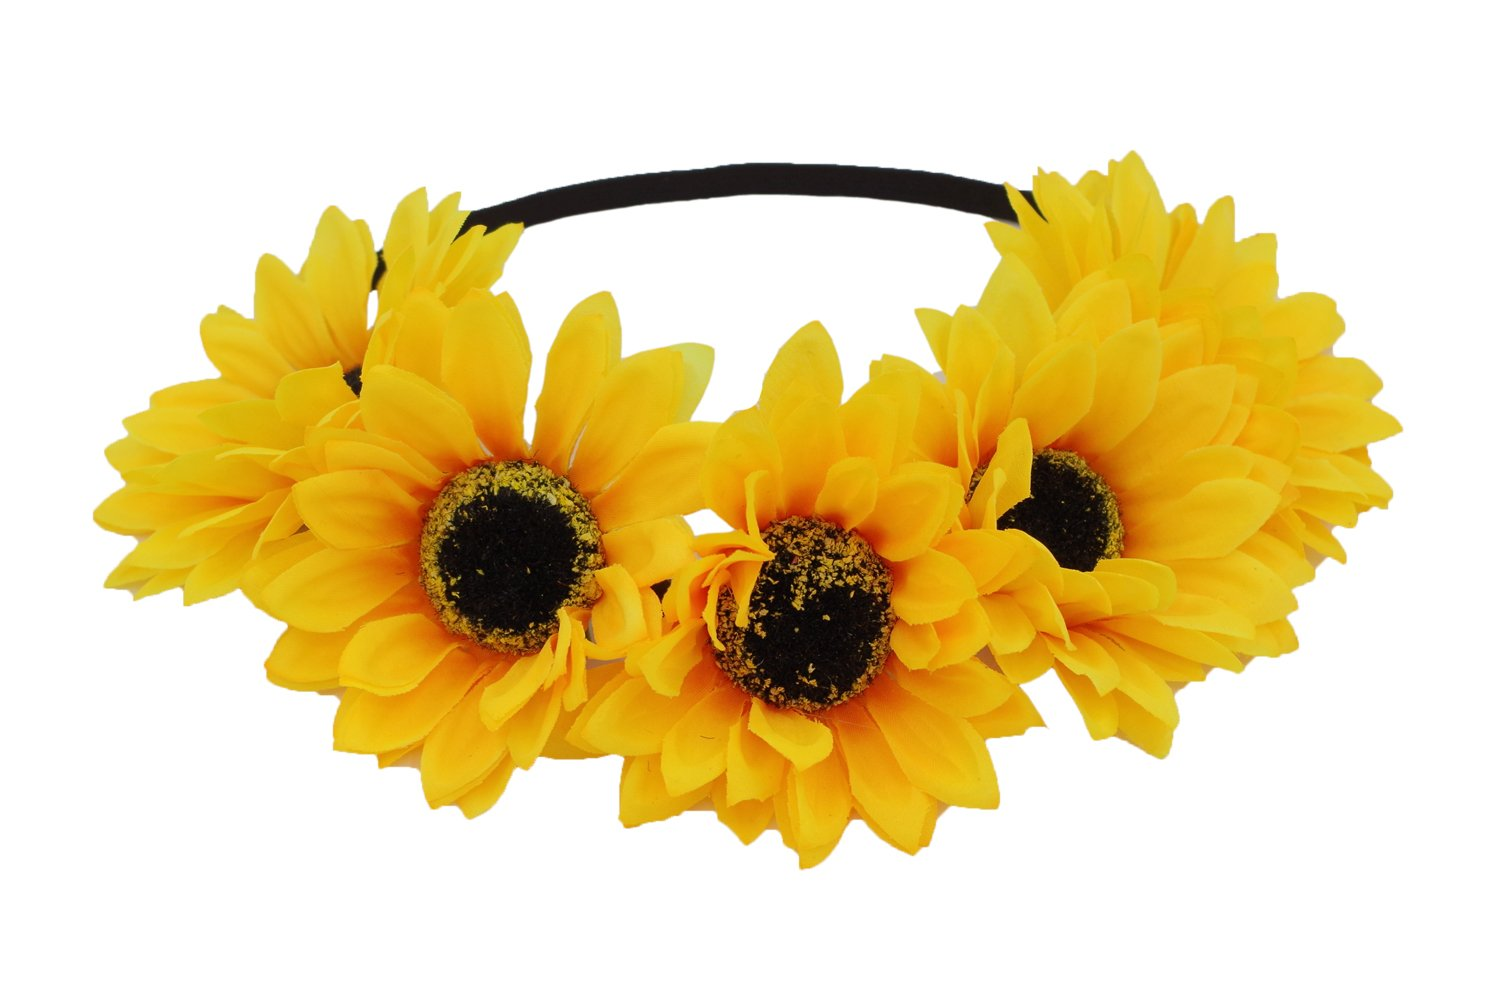 Floral Fall Sunflower Crown Hair Wreath Bridal Headpiece Festivals Hair Band (2#-Elastic Yellow Headbands) by Floral Fall